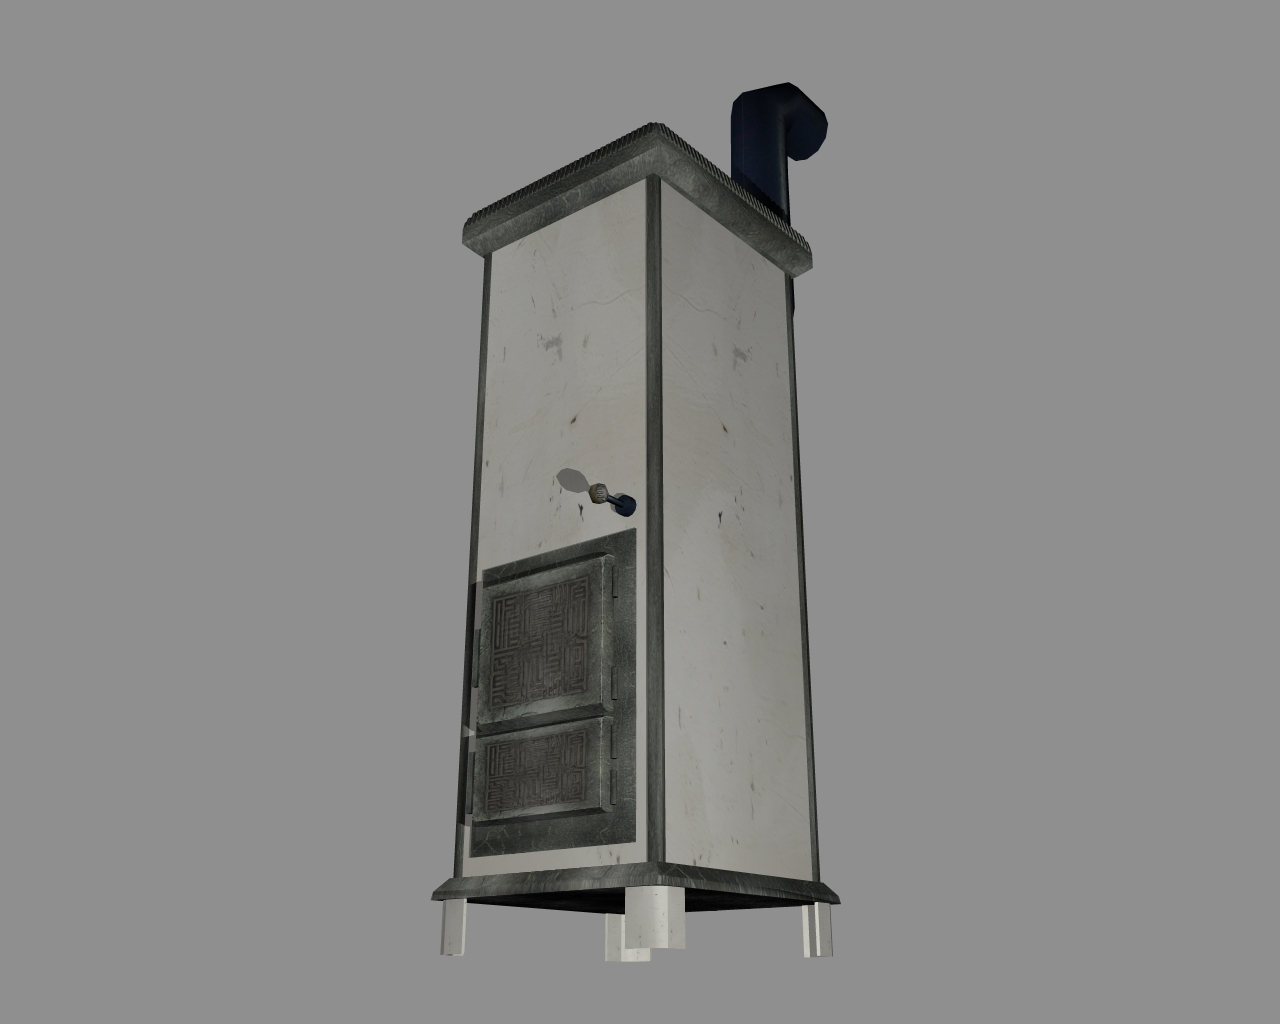 wood-burning stove 3d model 3ds 165898